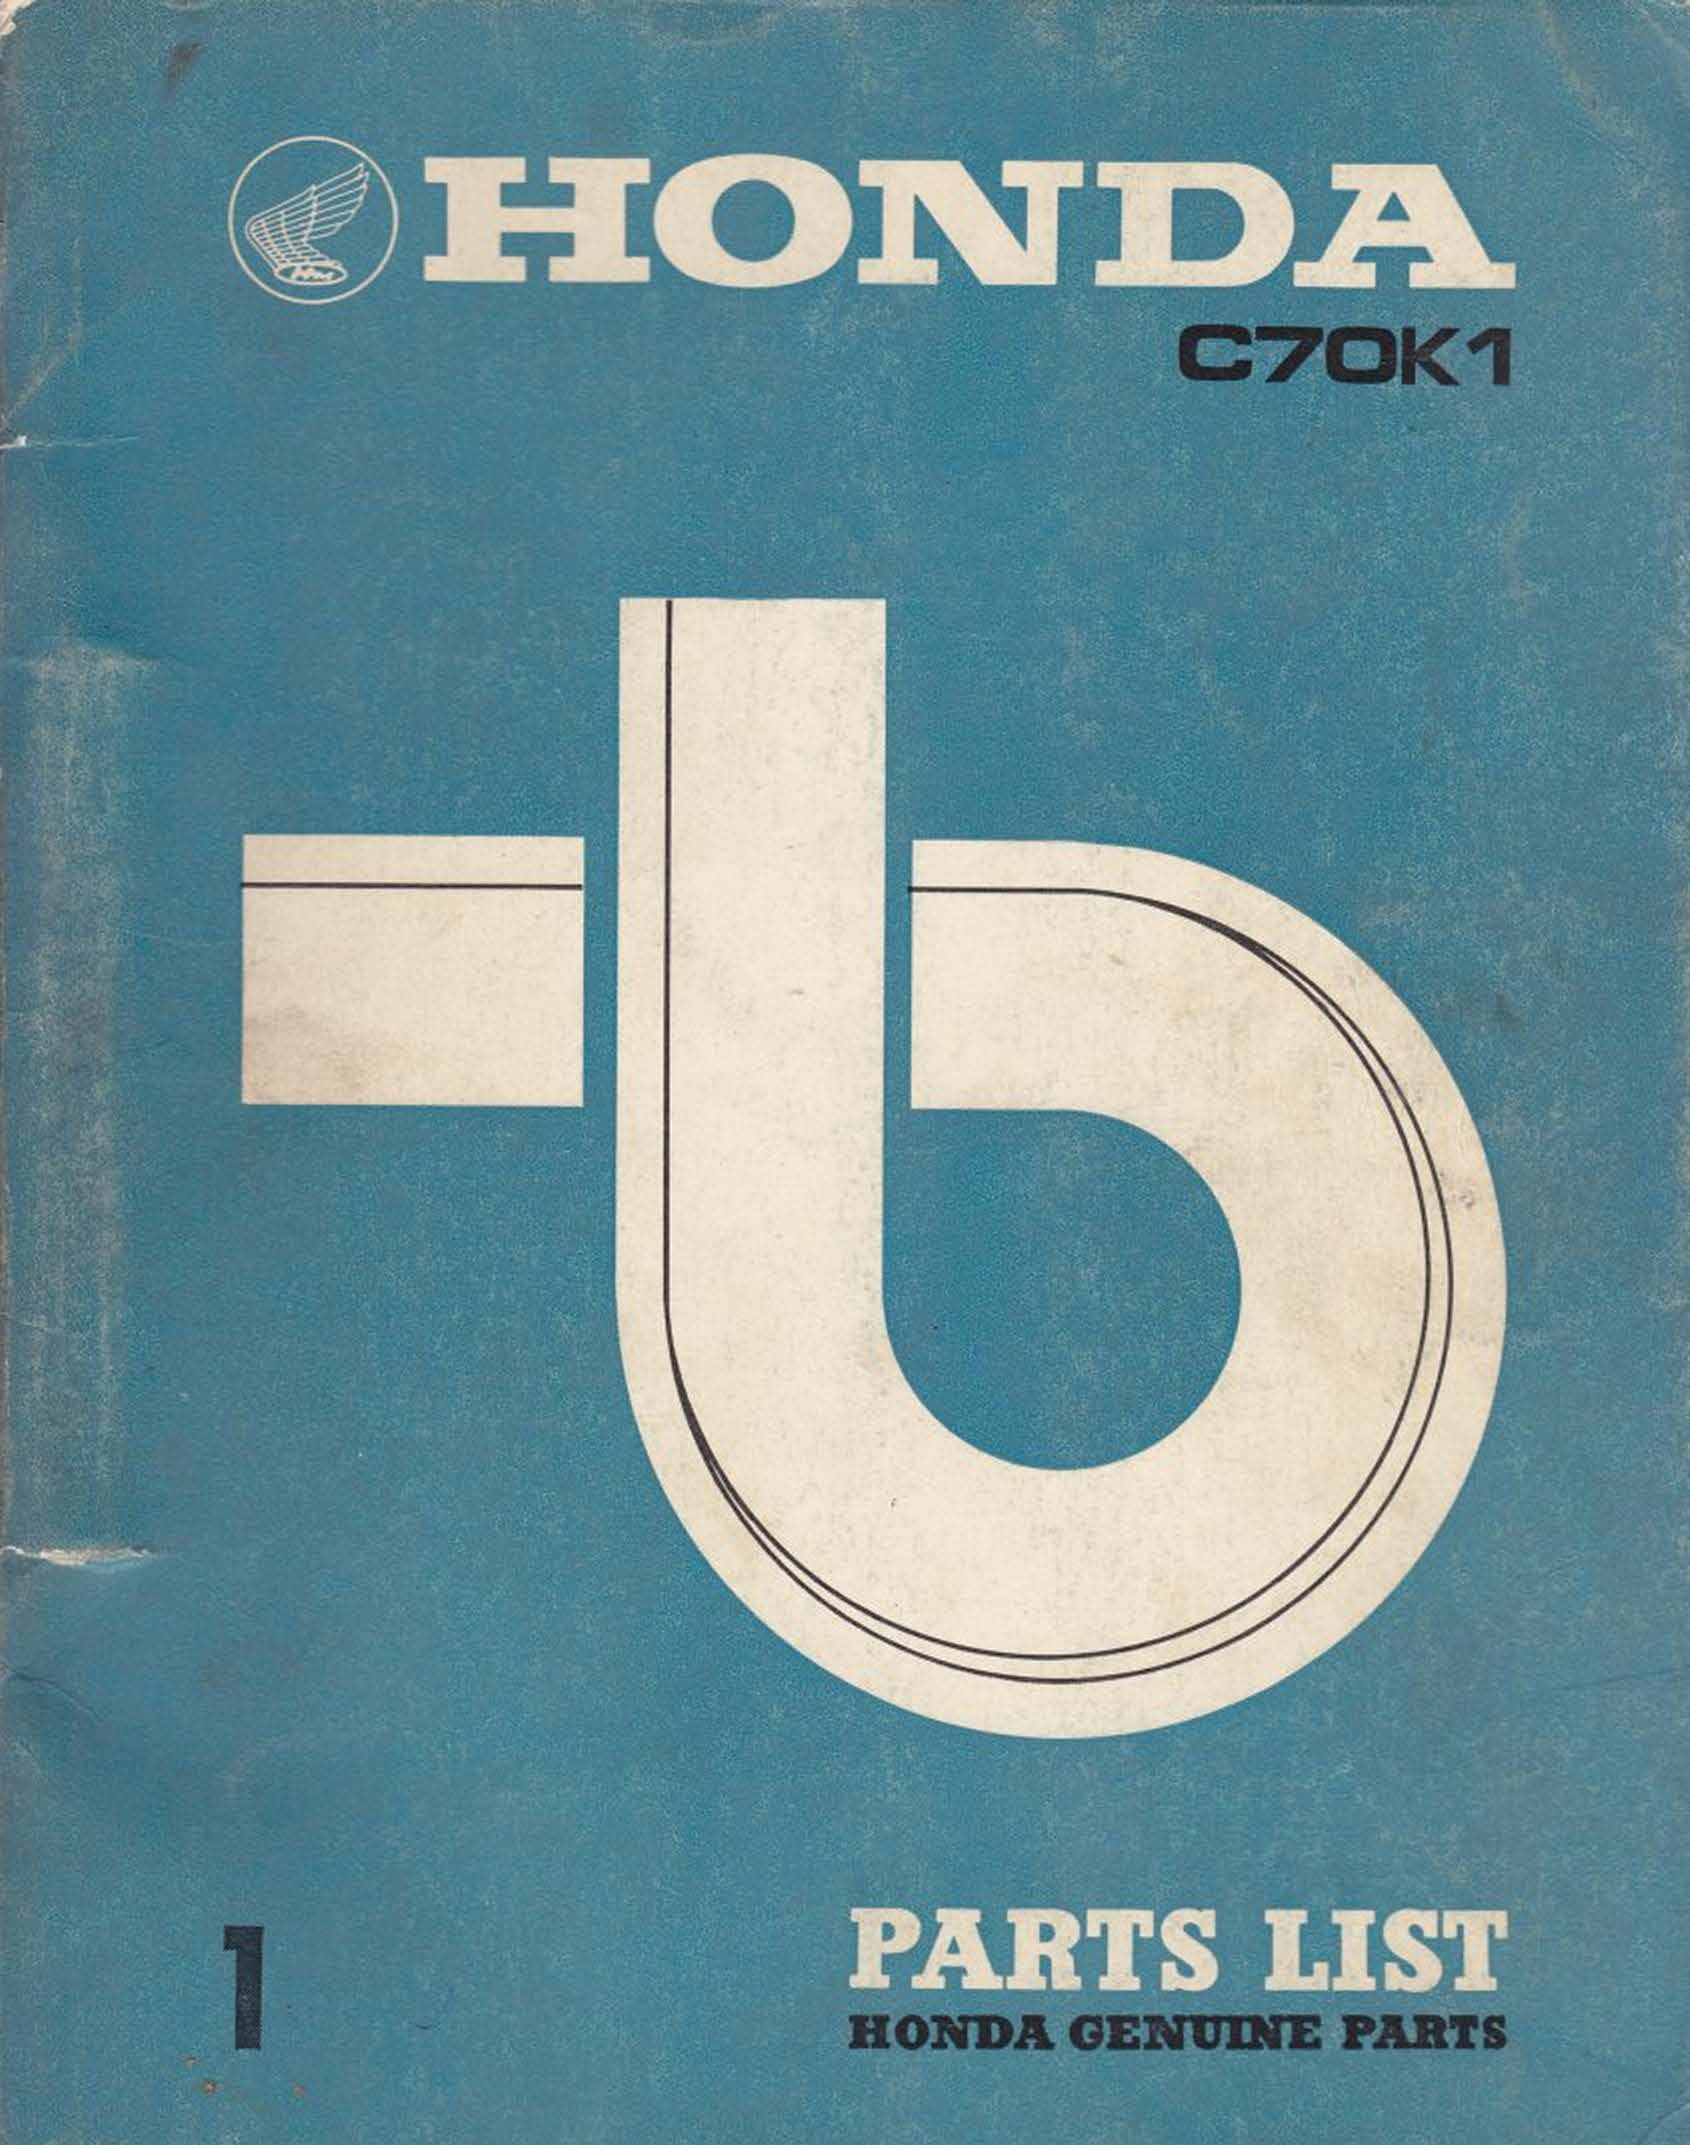 Parts list for Honda C70K1 (1971)